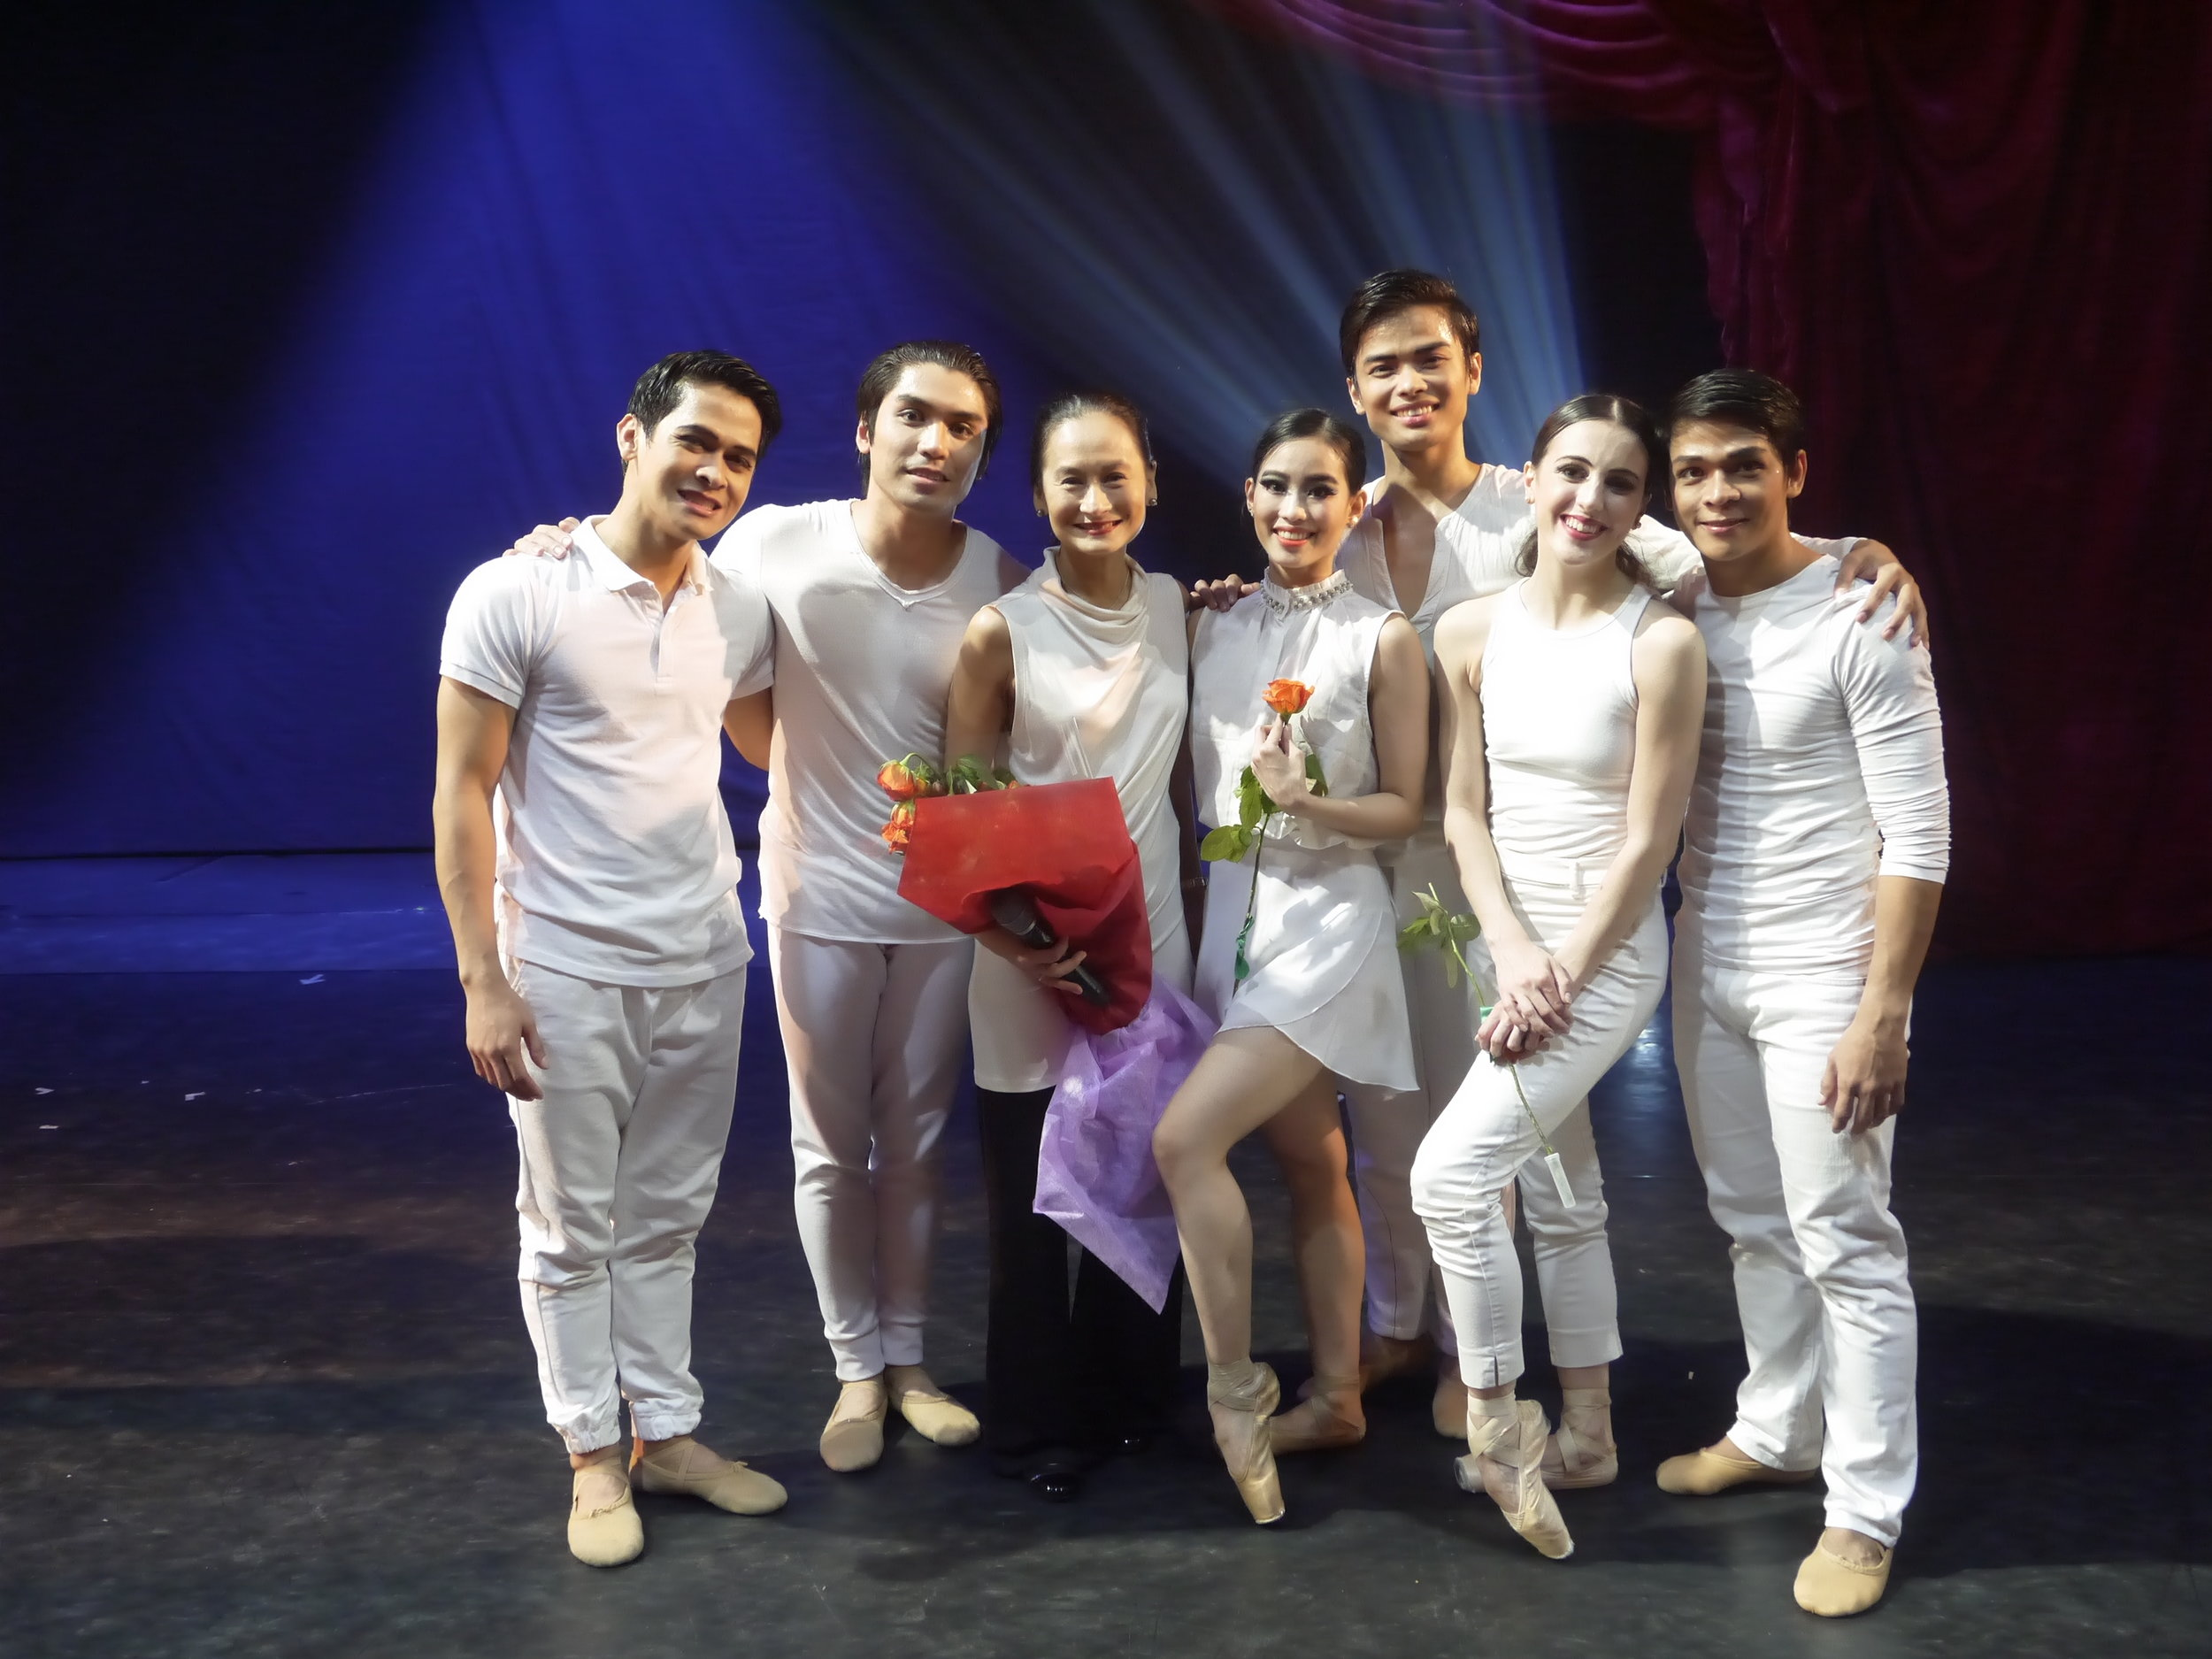 Artistic director Lisa Macuja Elizalde (third from left) poses with BM's principal dancers old and new shortly after her surprise announcement of promotions within the company. With her are, from left, Rudy De Dios, Romeo Peralta, Joan Emery Sia, Elpidio Magat, Katherine Barkman and Gerardo Francisco. Photo by Giselle P. Kasilag